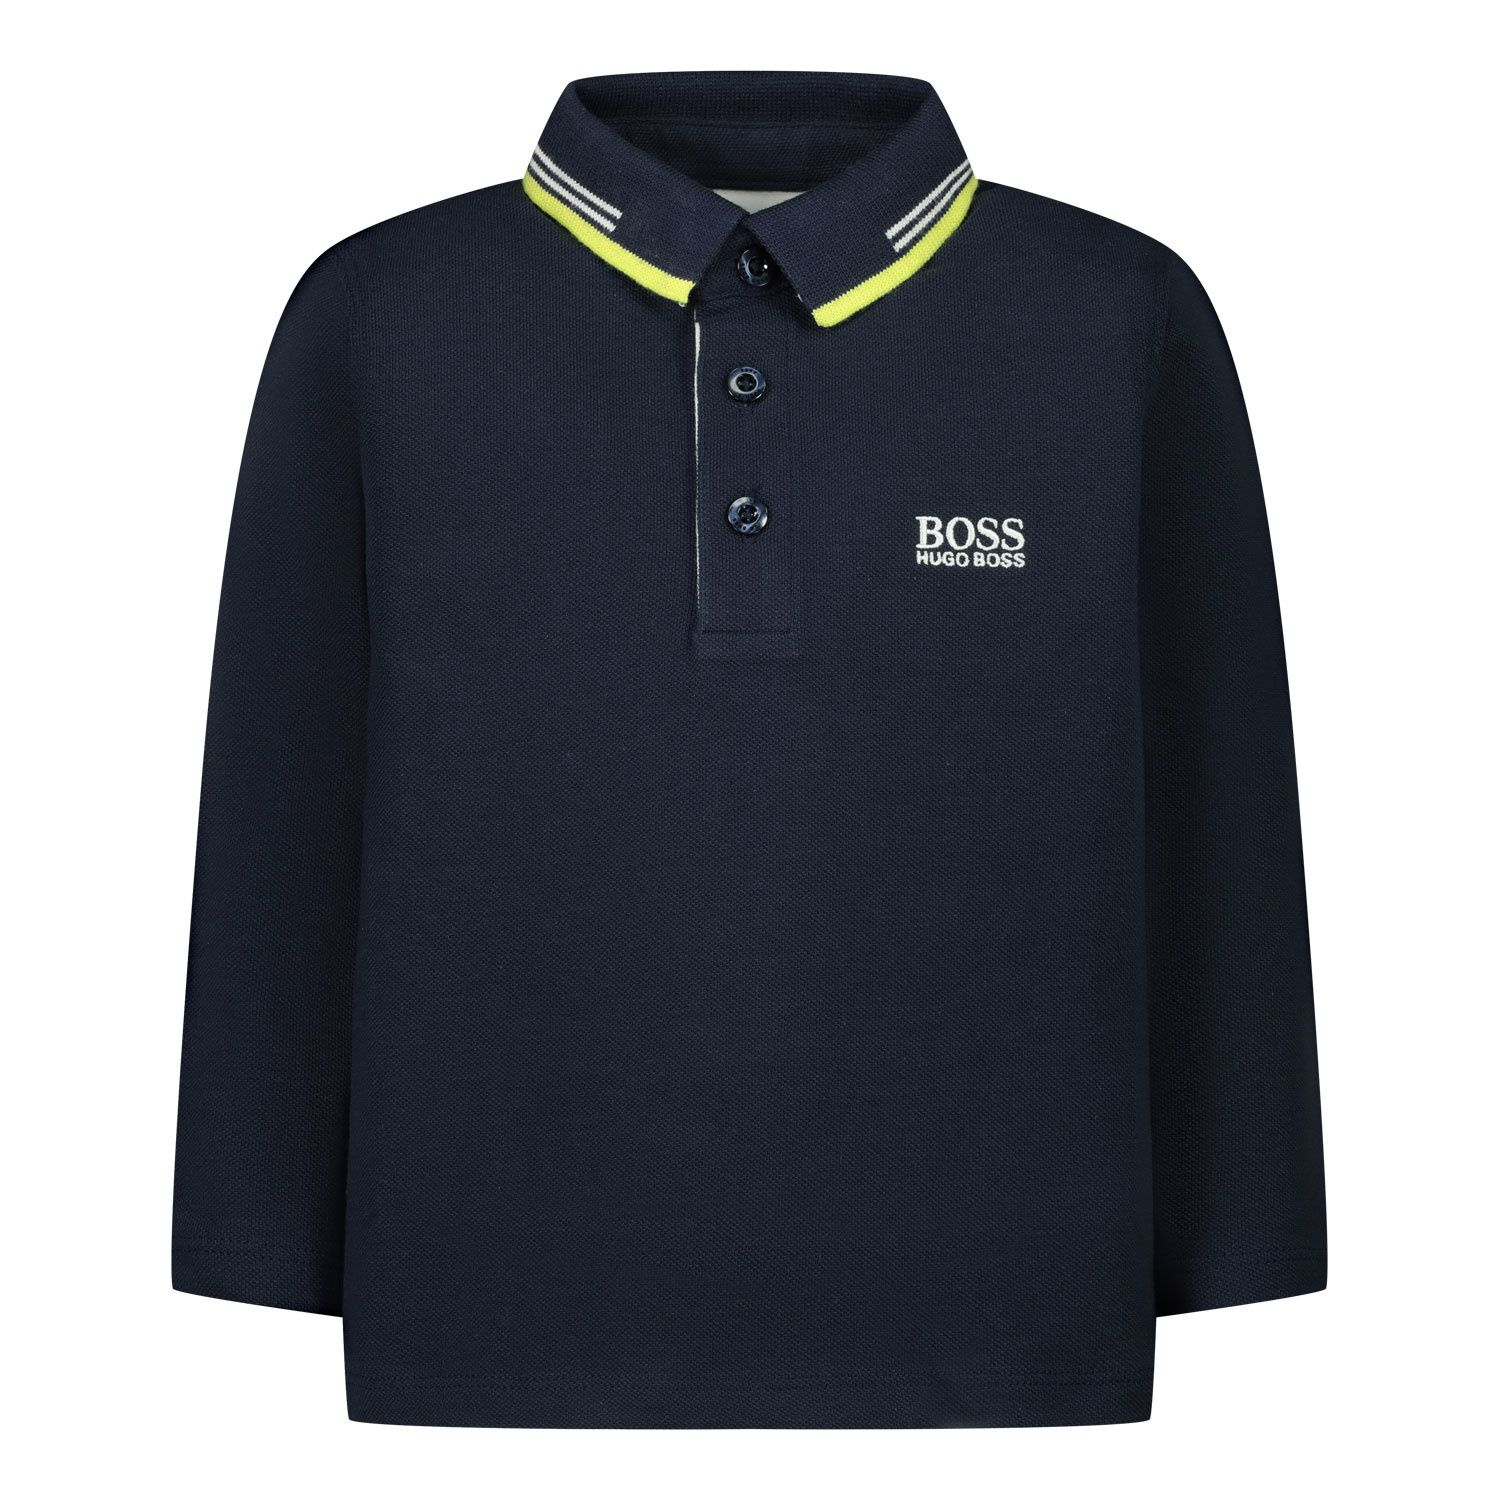 Picture of Boss J05803 baby poloshirt navy